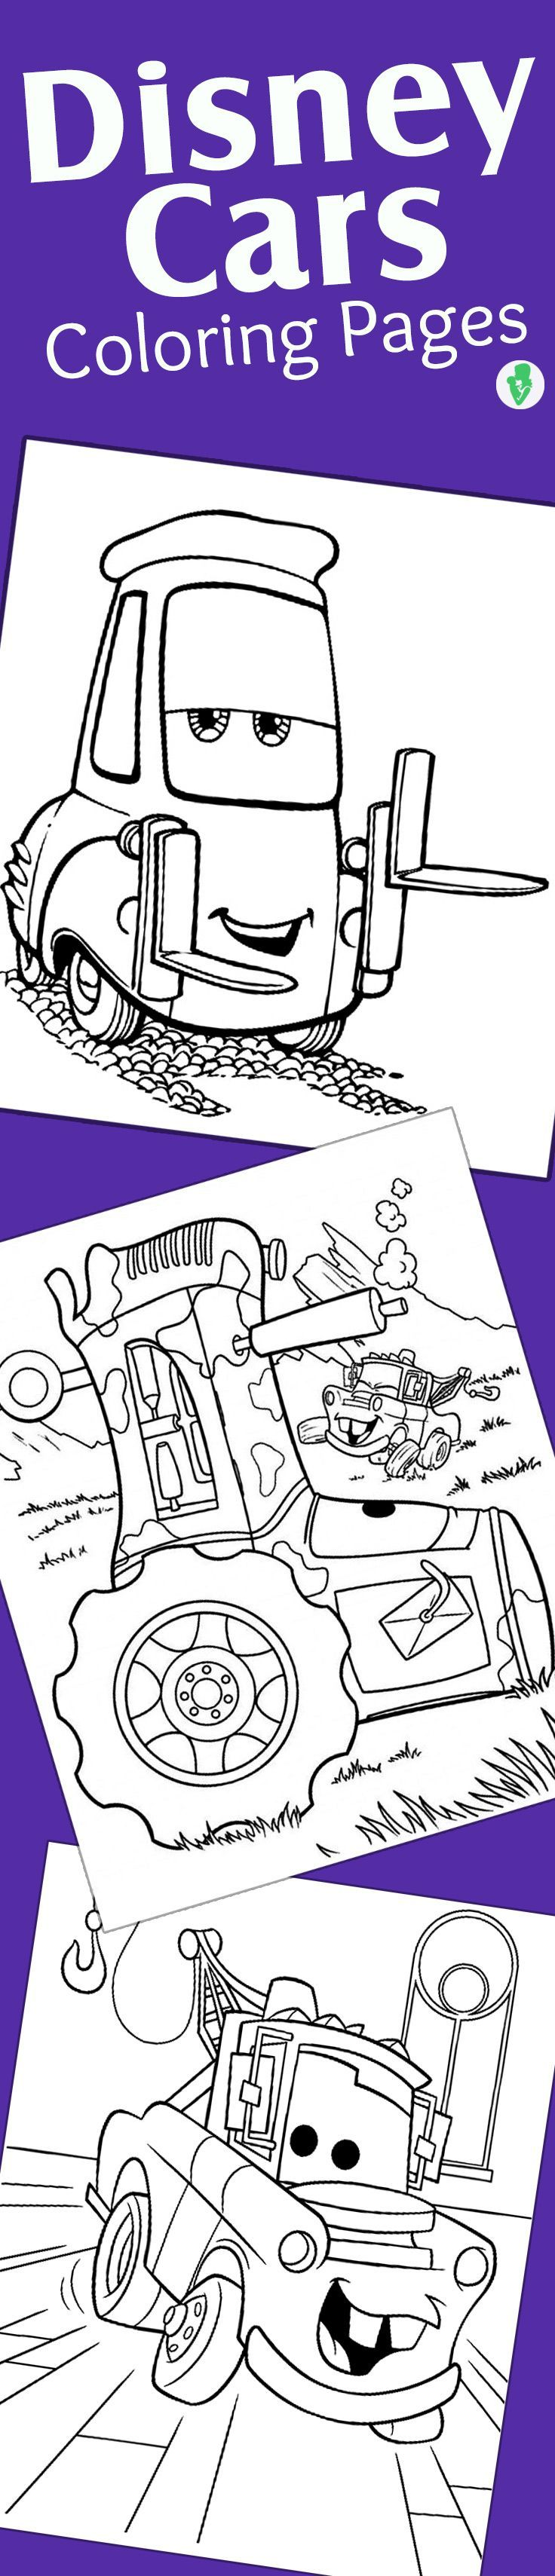 Car coloring pages online - Top 10 Free Printable Disney Cars Coloring Pages Online